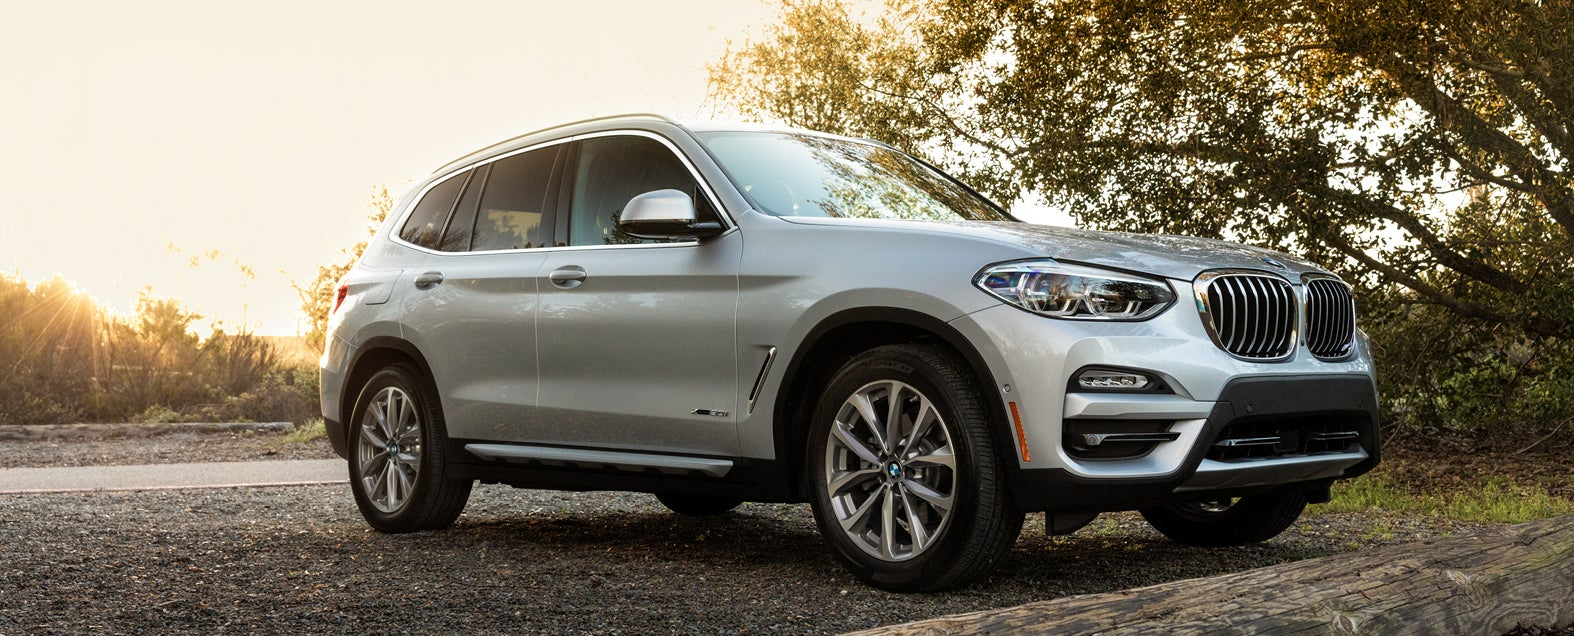 New 2020 Bmw X3 Lease Offer Price Bmw Of New London